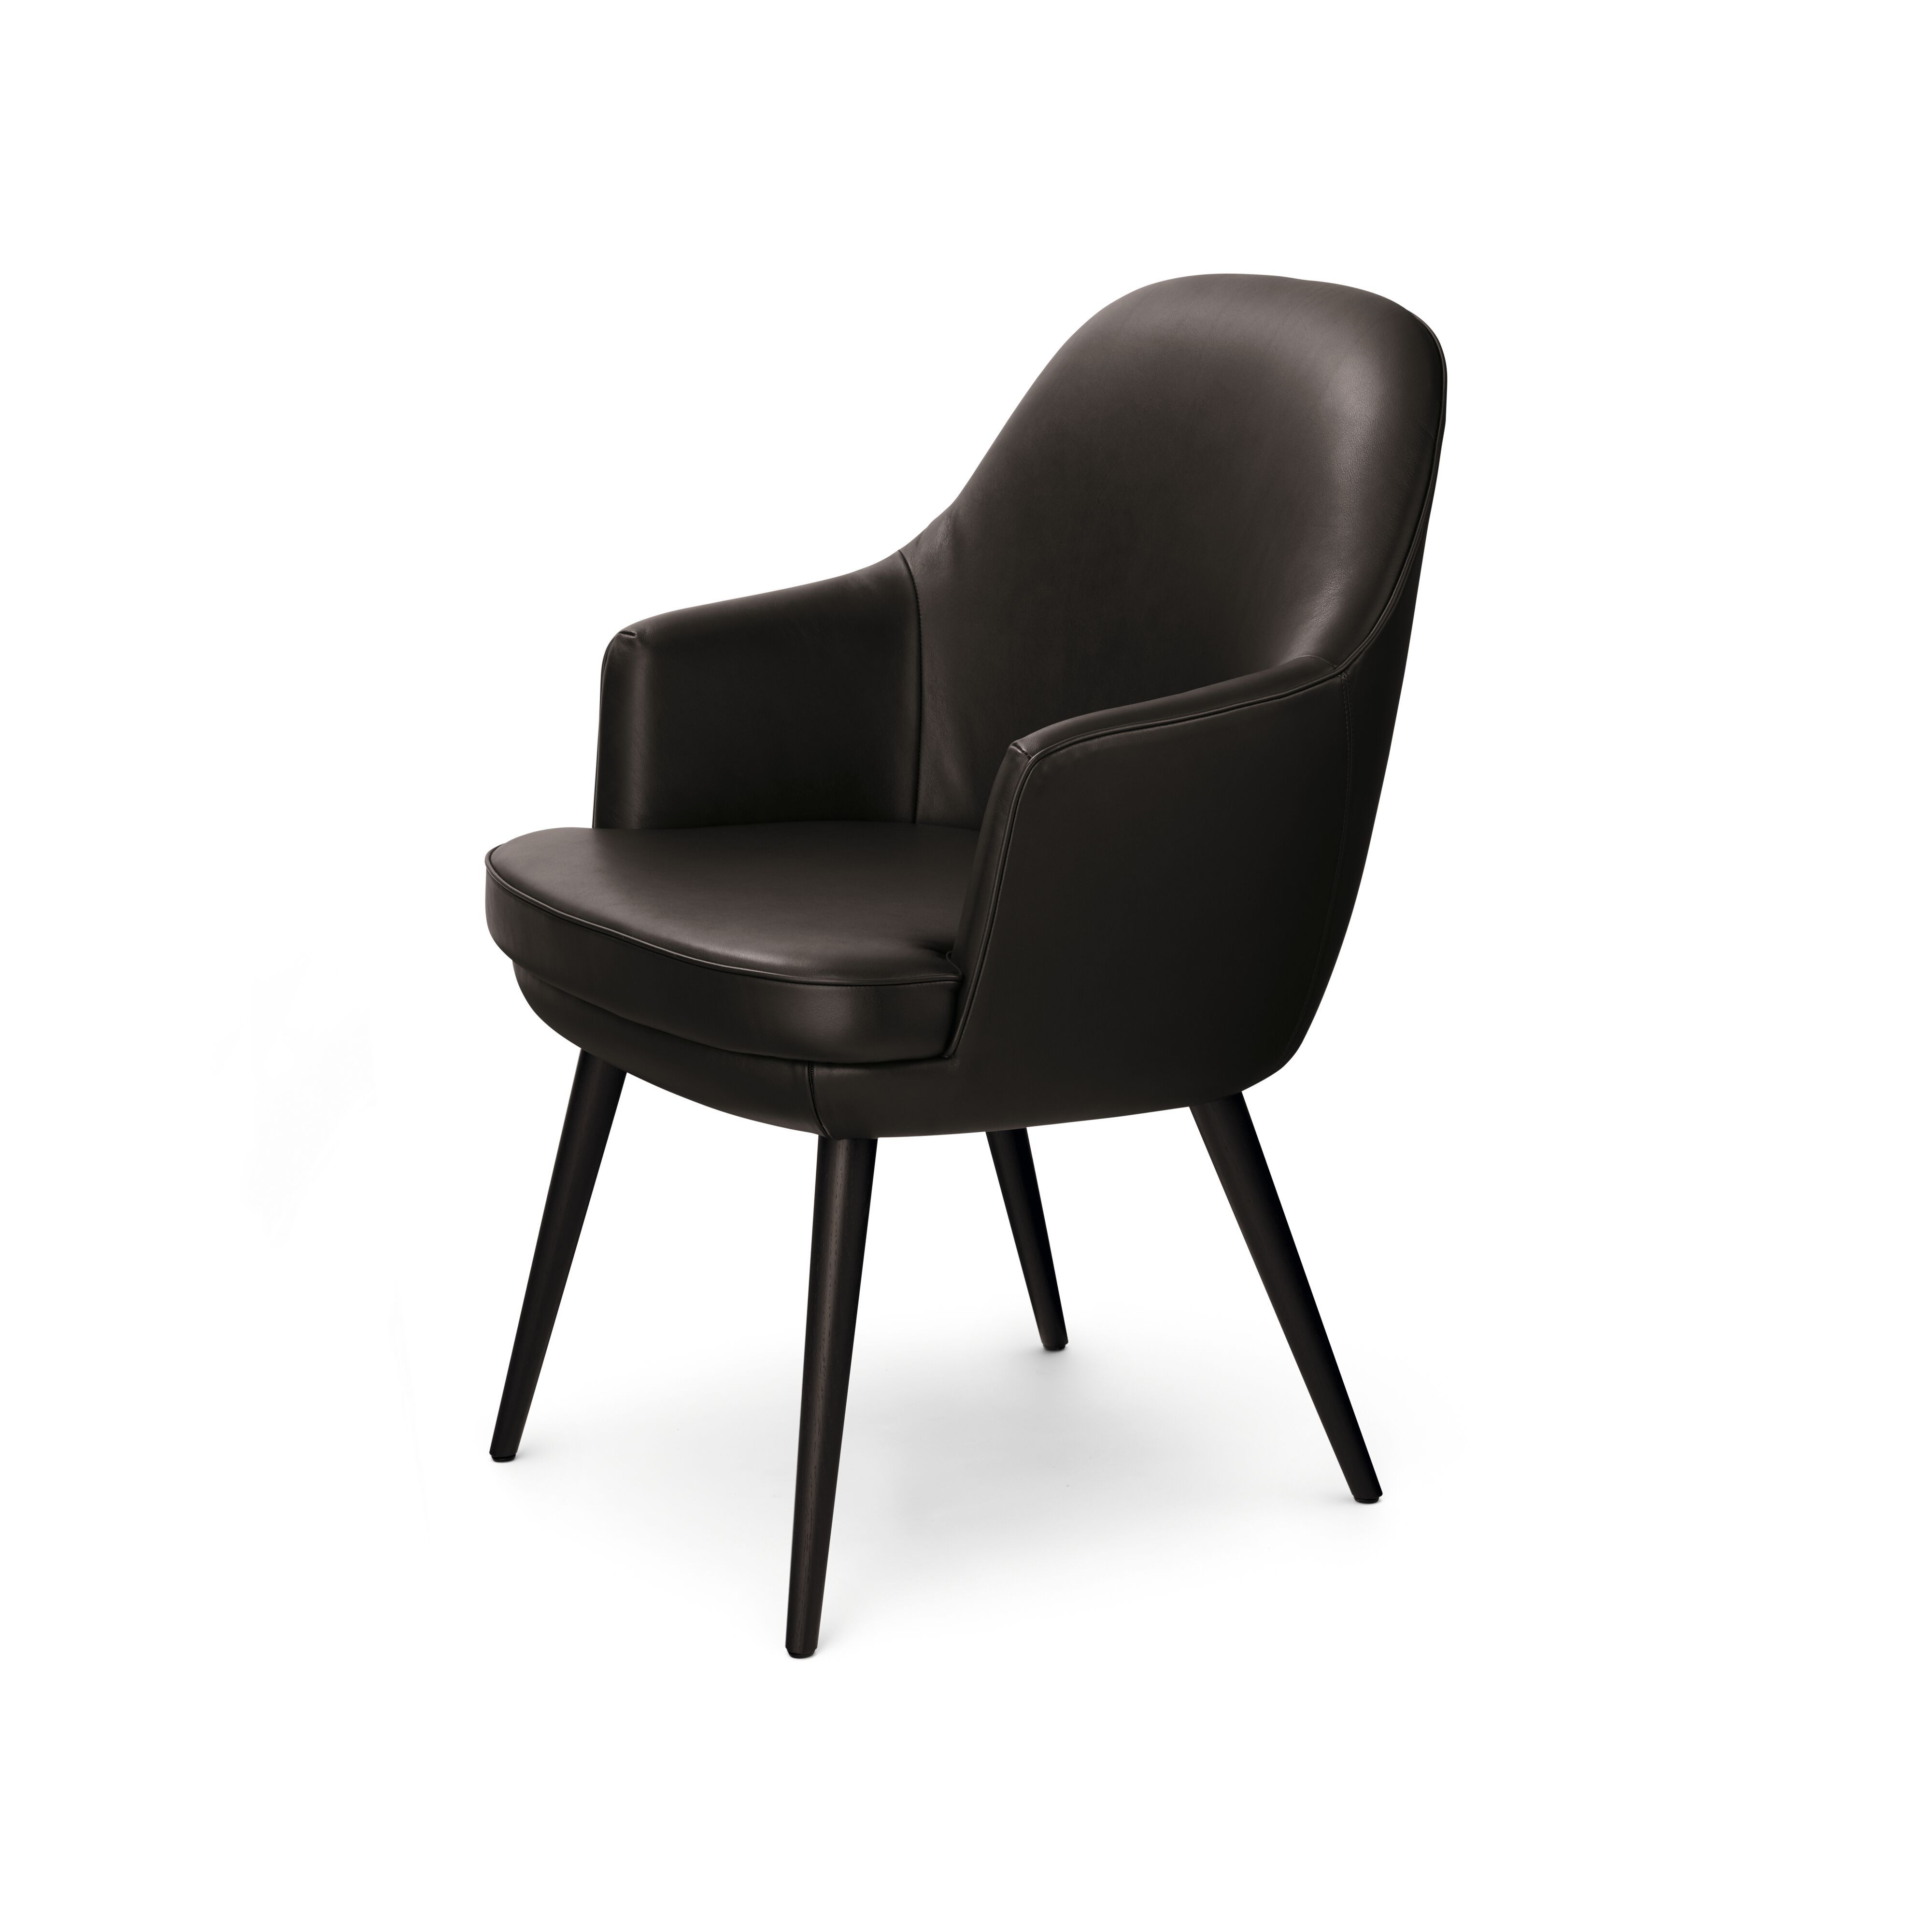 12_WK-375_Chair-Modell-1376-Dining-Chair-0012-H.tif